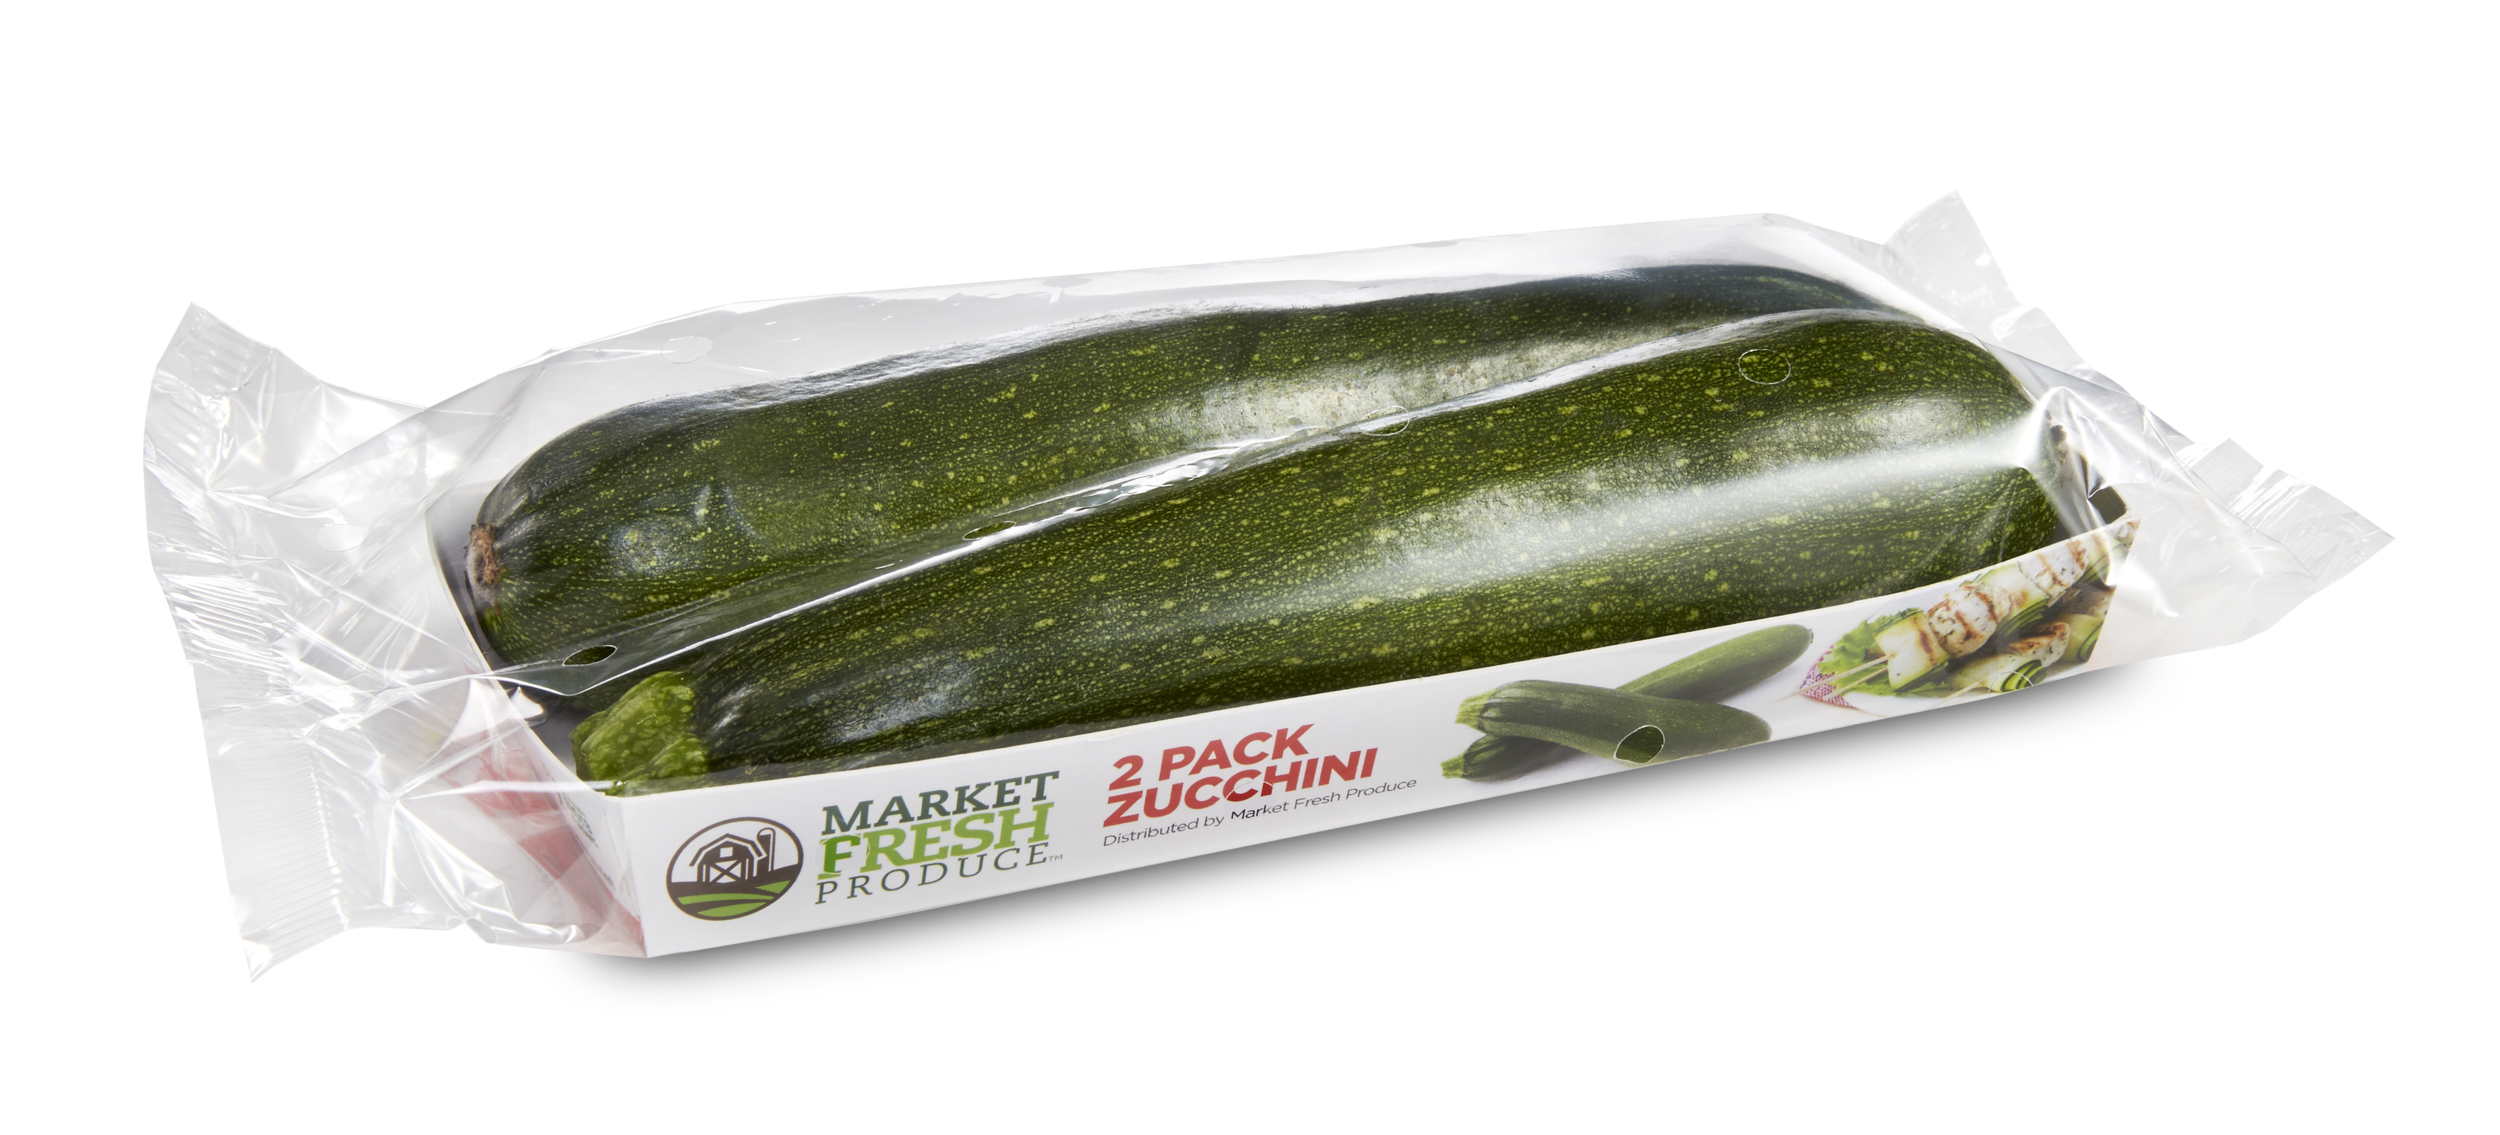 Zucchini Squash - This green goodness is a summer time favorite and the new go to for a noodle substitute. We offer Zucchini Squash in a 22 pound US #1 bulk case or a 2 pack shelf ready retail package.